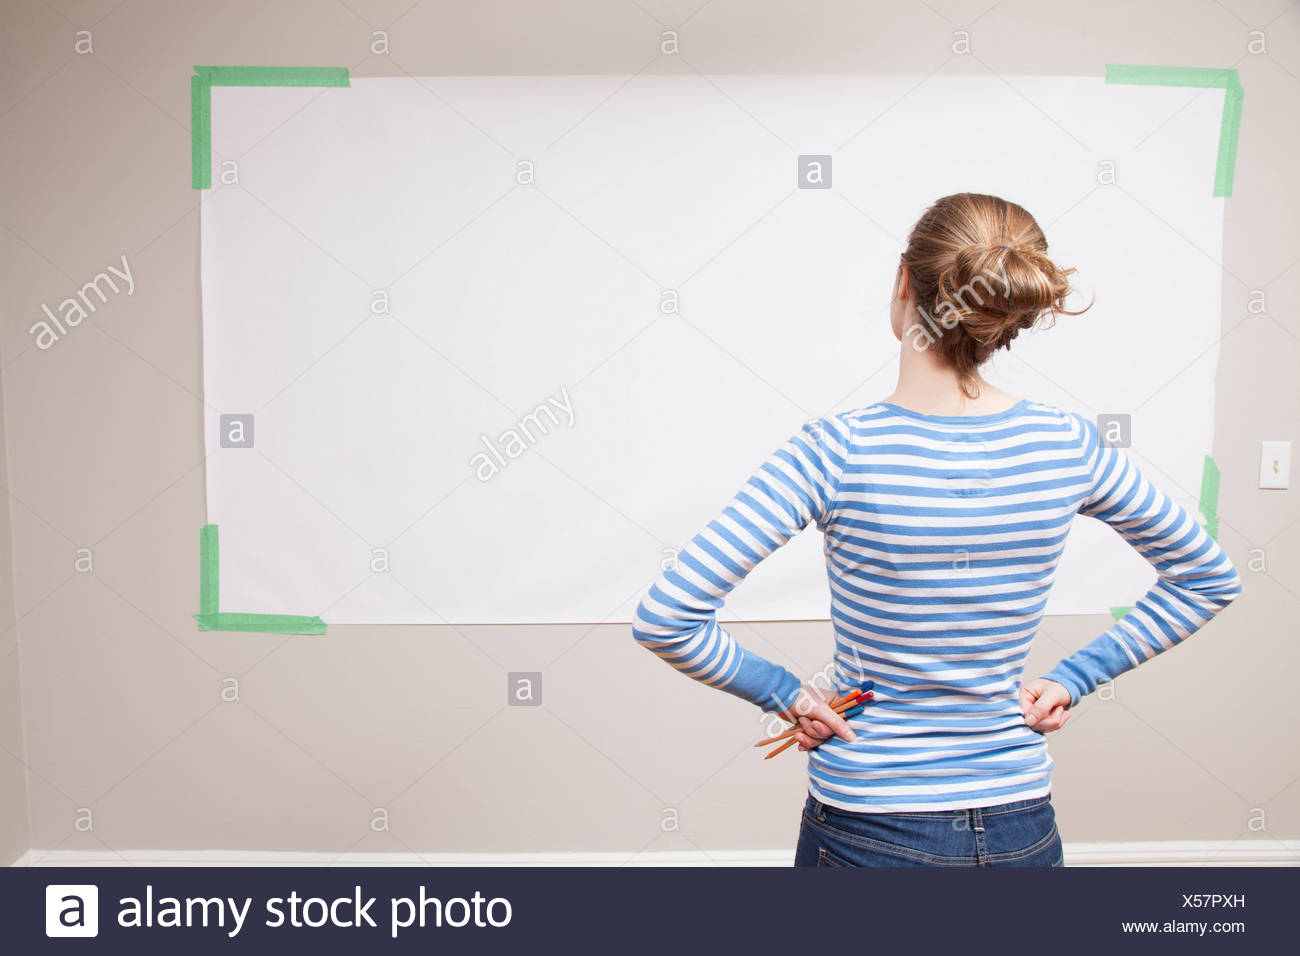 Girl looking at blank space on wall - Stock Image